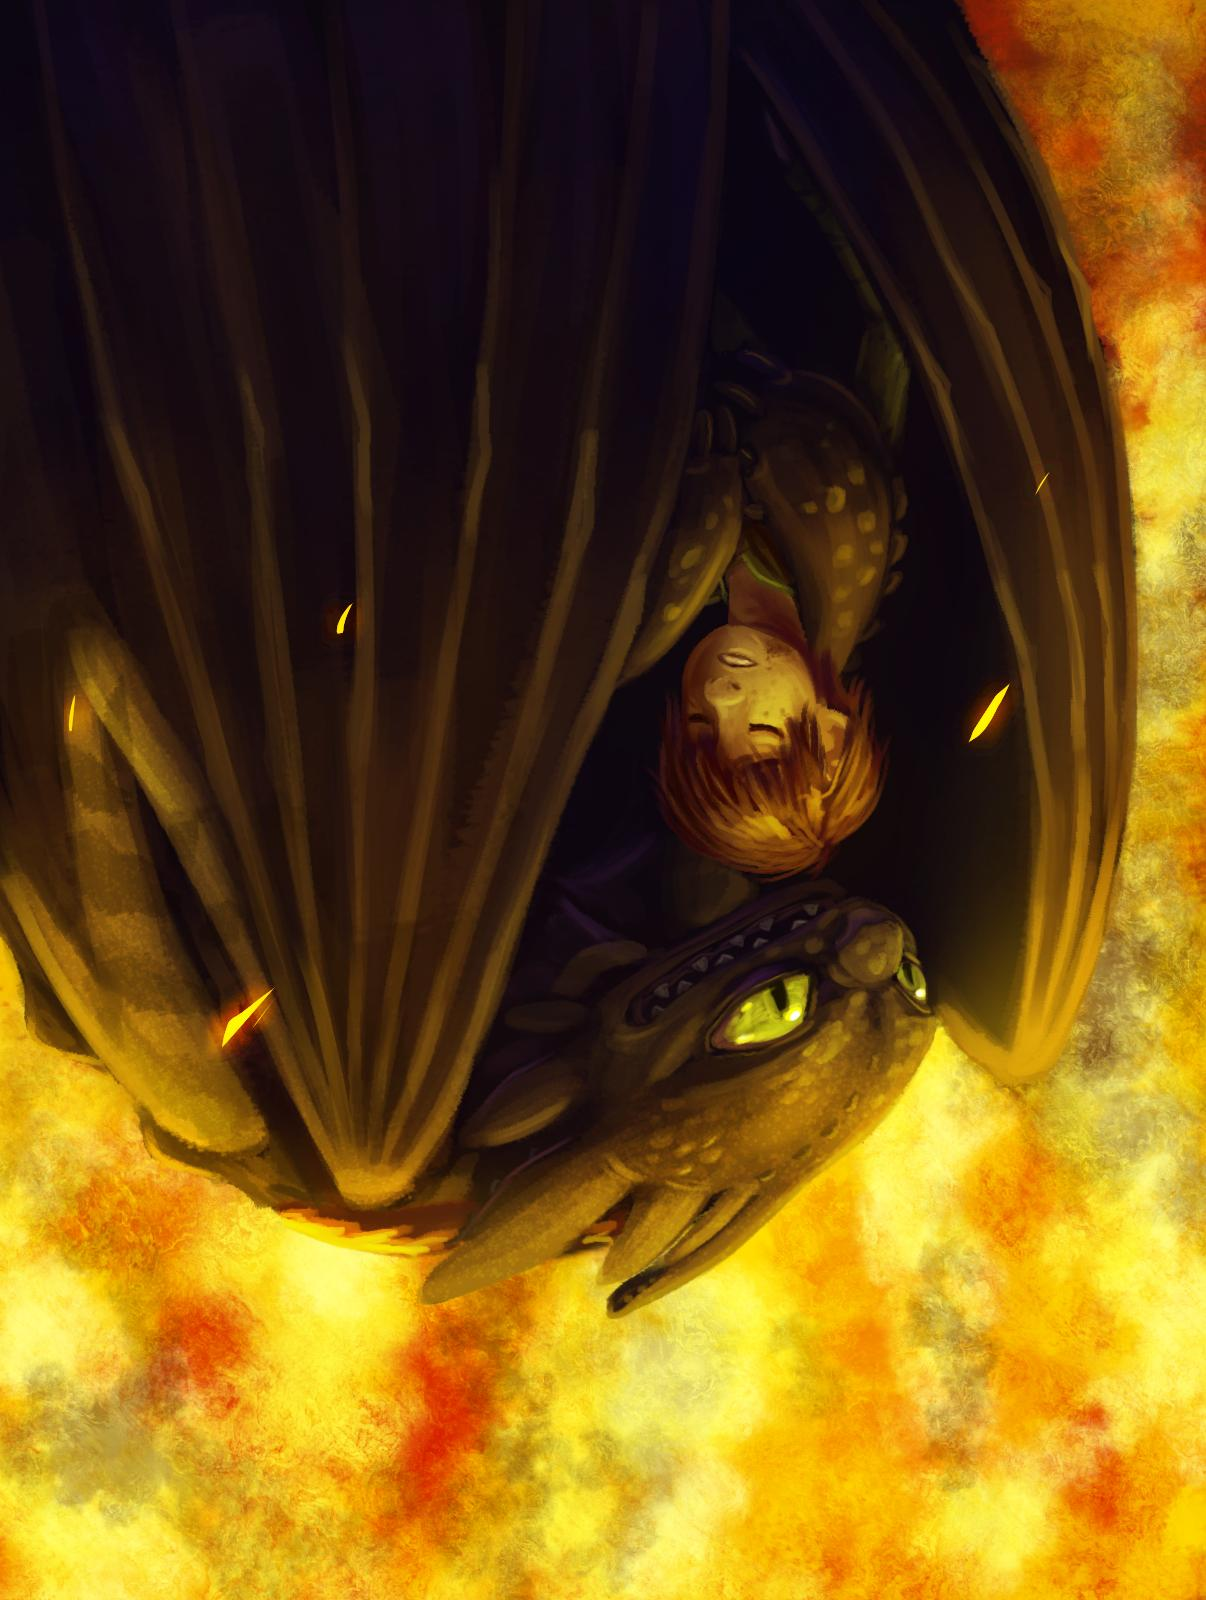 Toothless protecting Hiccup